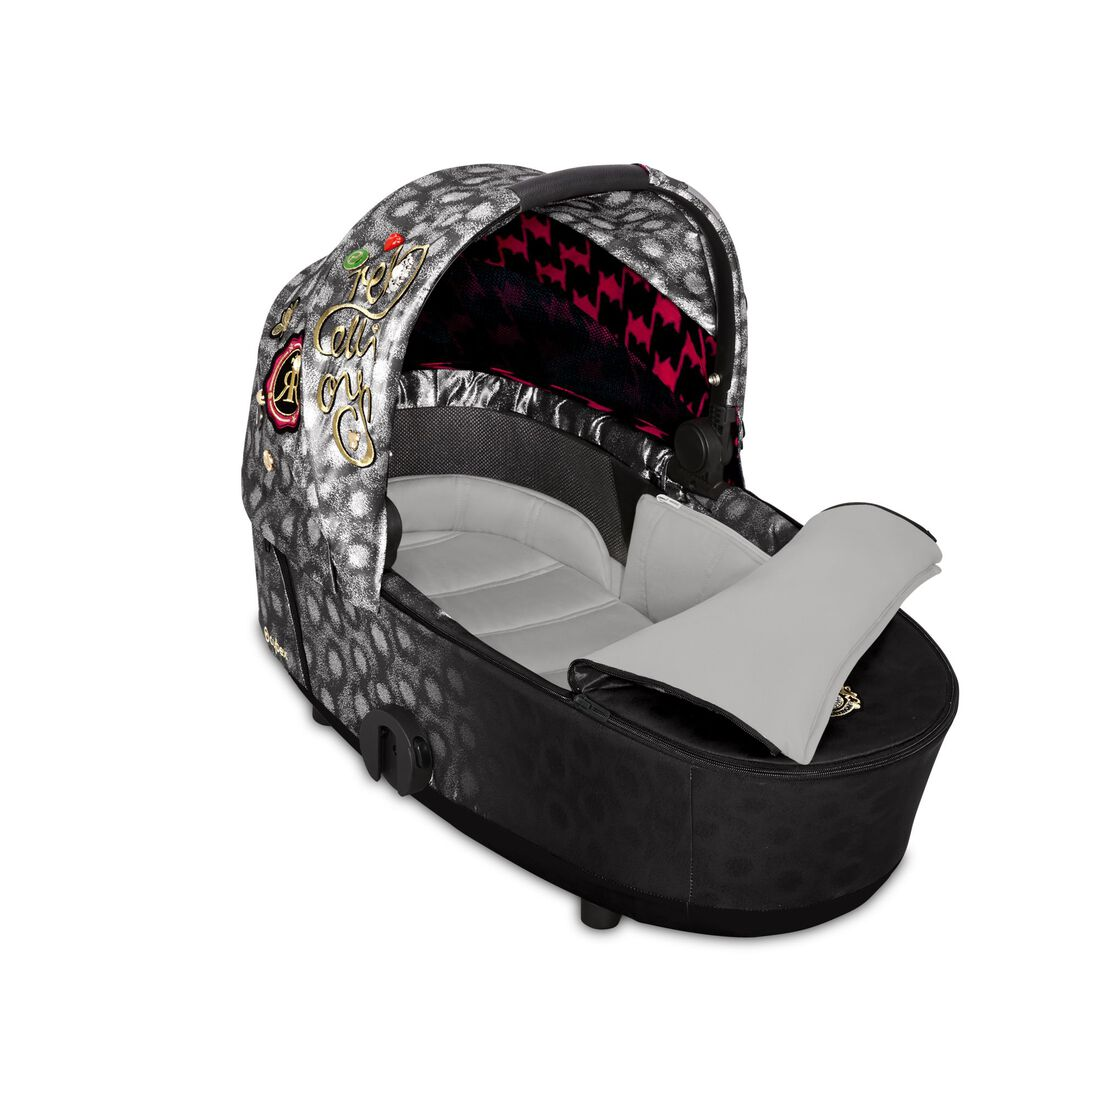 CYBEX Mios Lux Carry Cot - Rebellious in Rebellious large image number 2